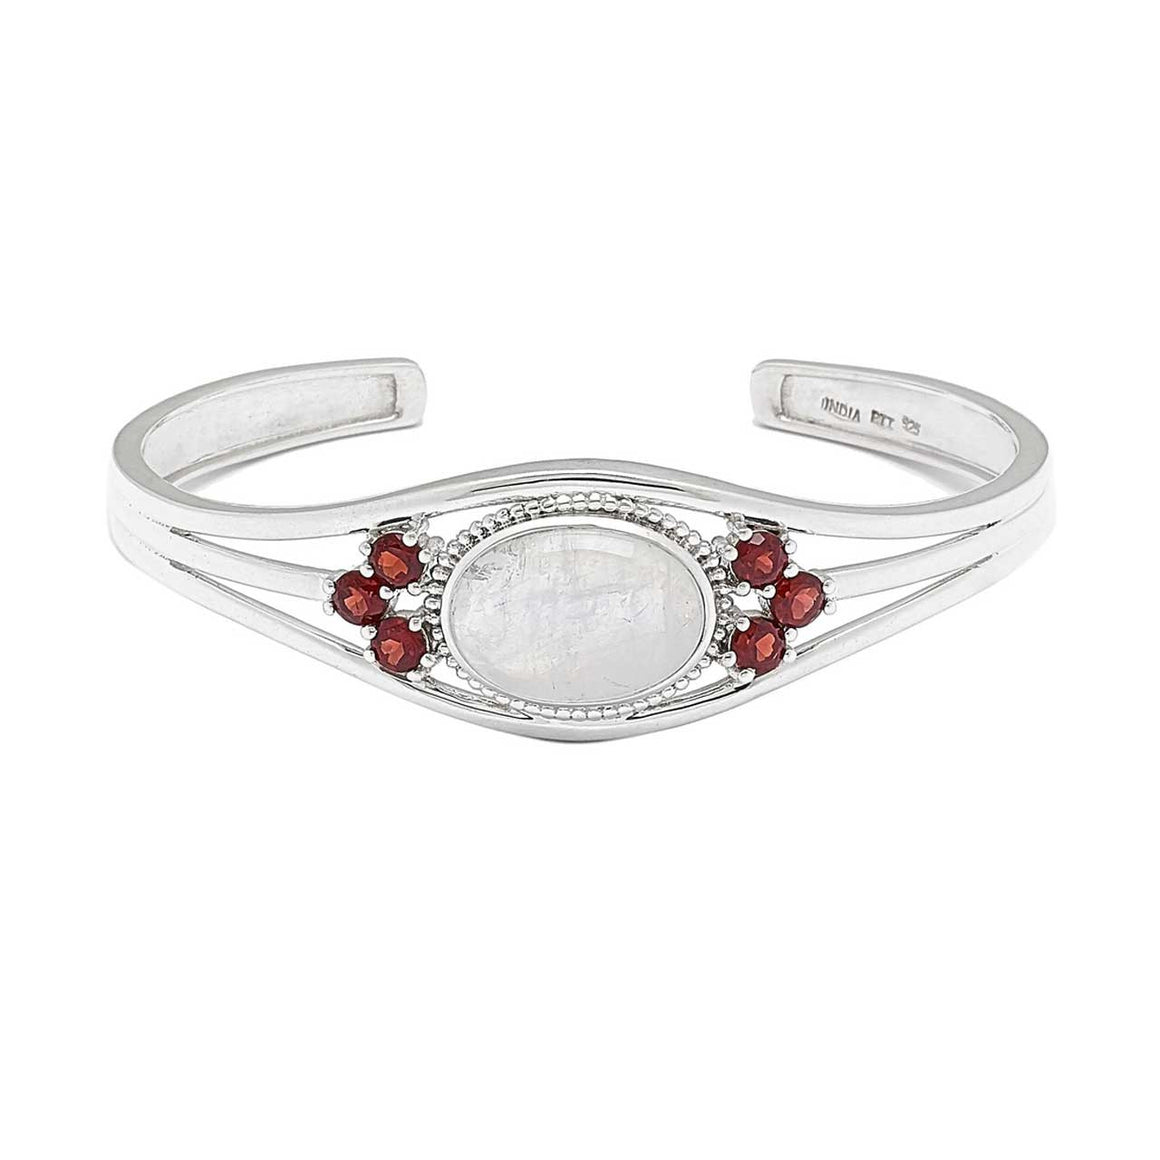 Rainbow Moonstone and Garnet Cuff Bracelet